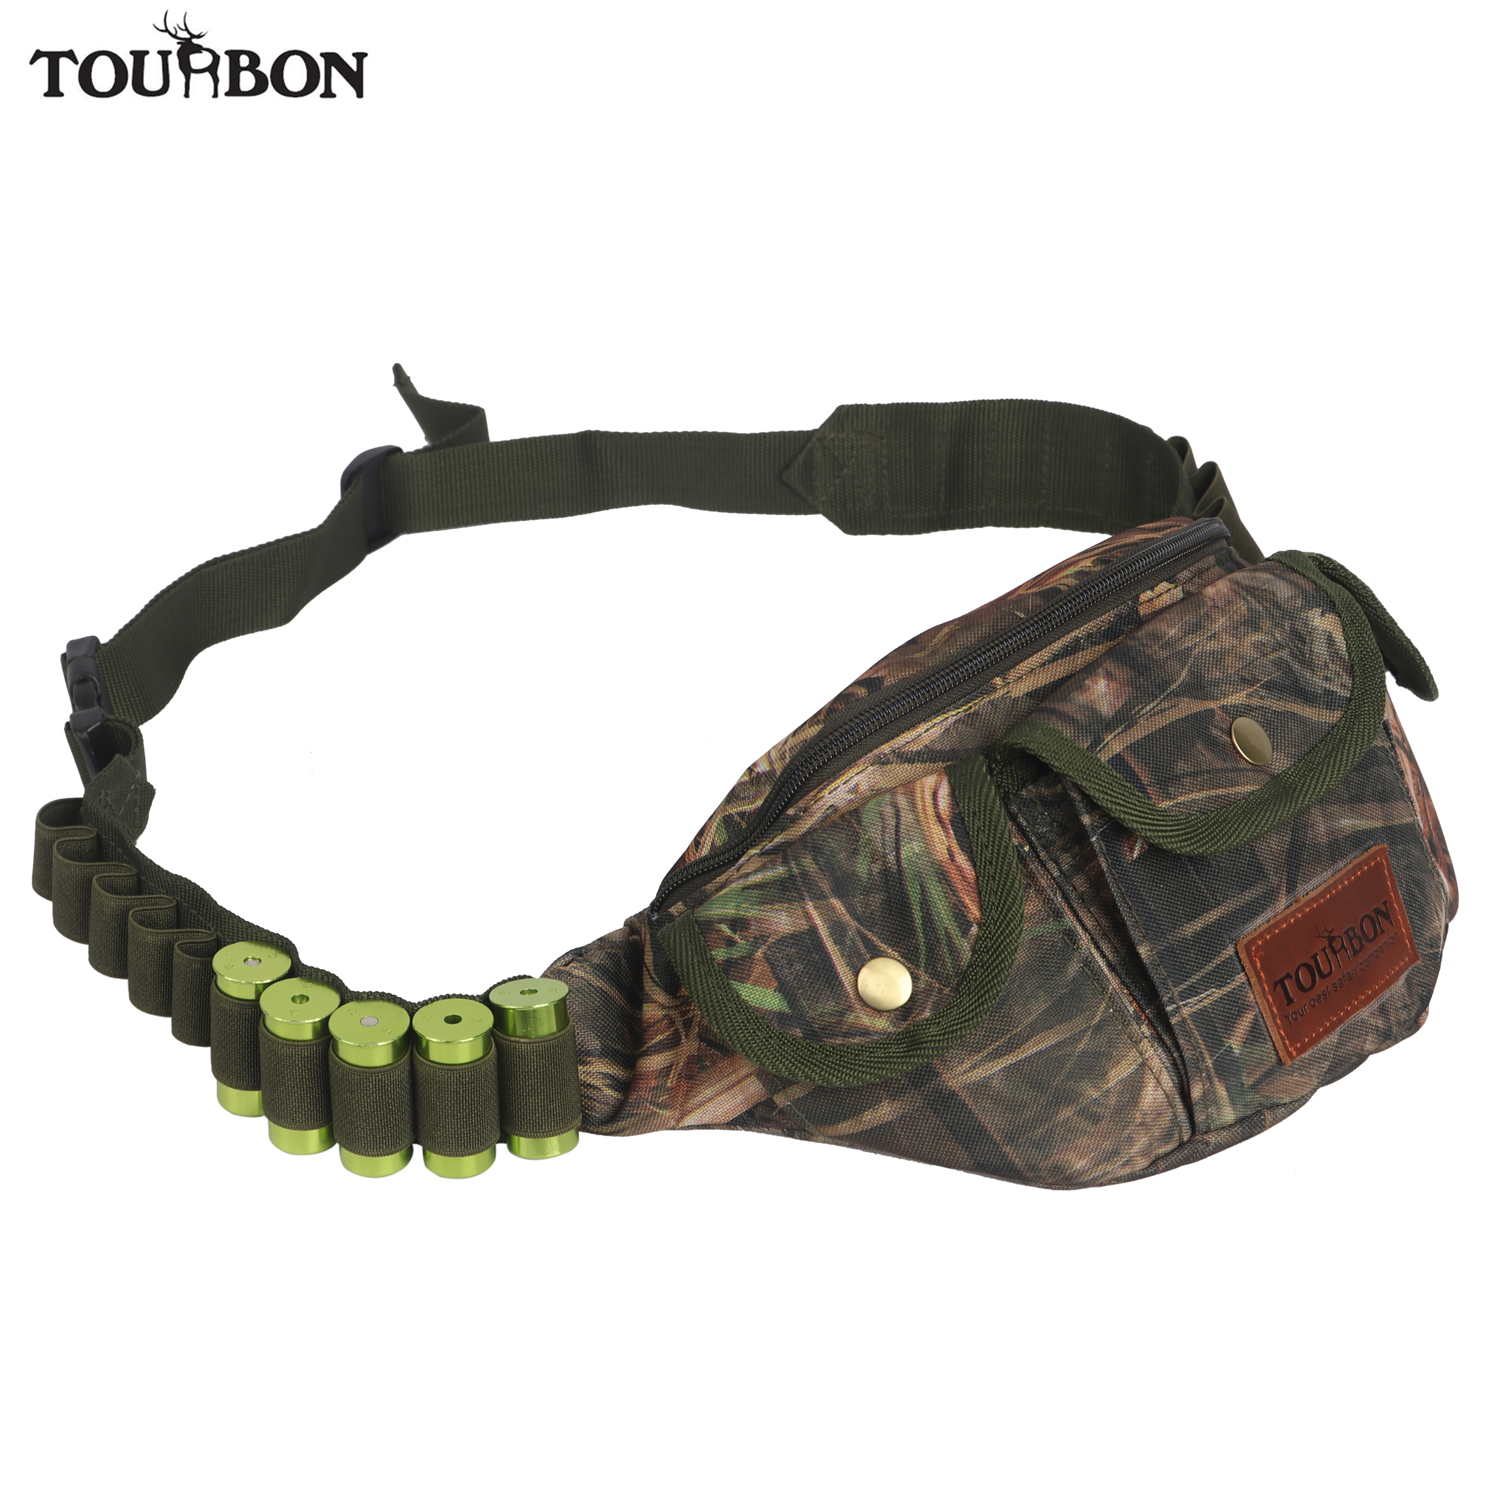 Tourbon Tactical Outdoor Hunting Shotgun 12 Gauge Cartridges Ammo Shells Bullet Belt Bag Waist Pouch Camo Sports Camping Hiking